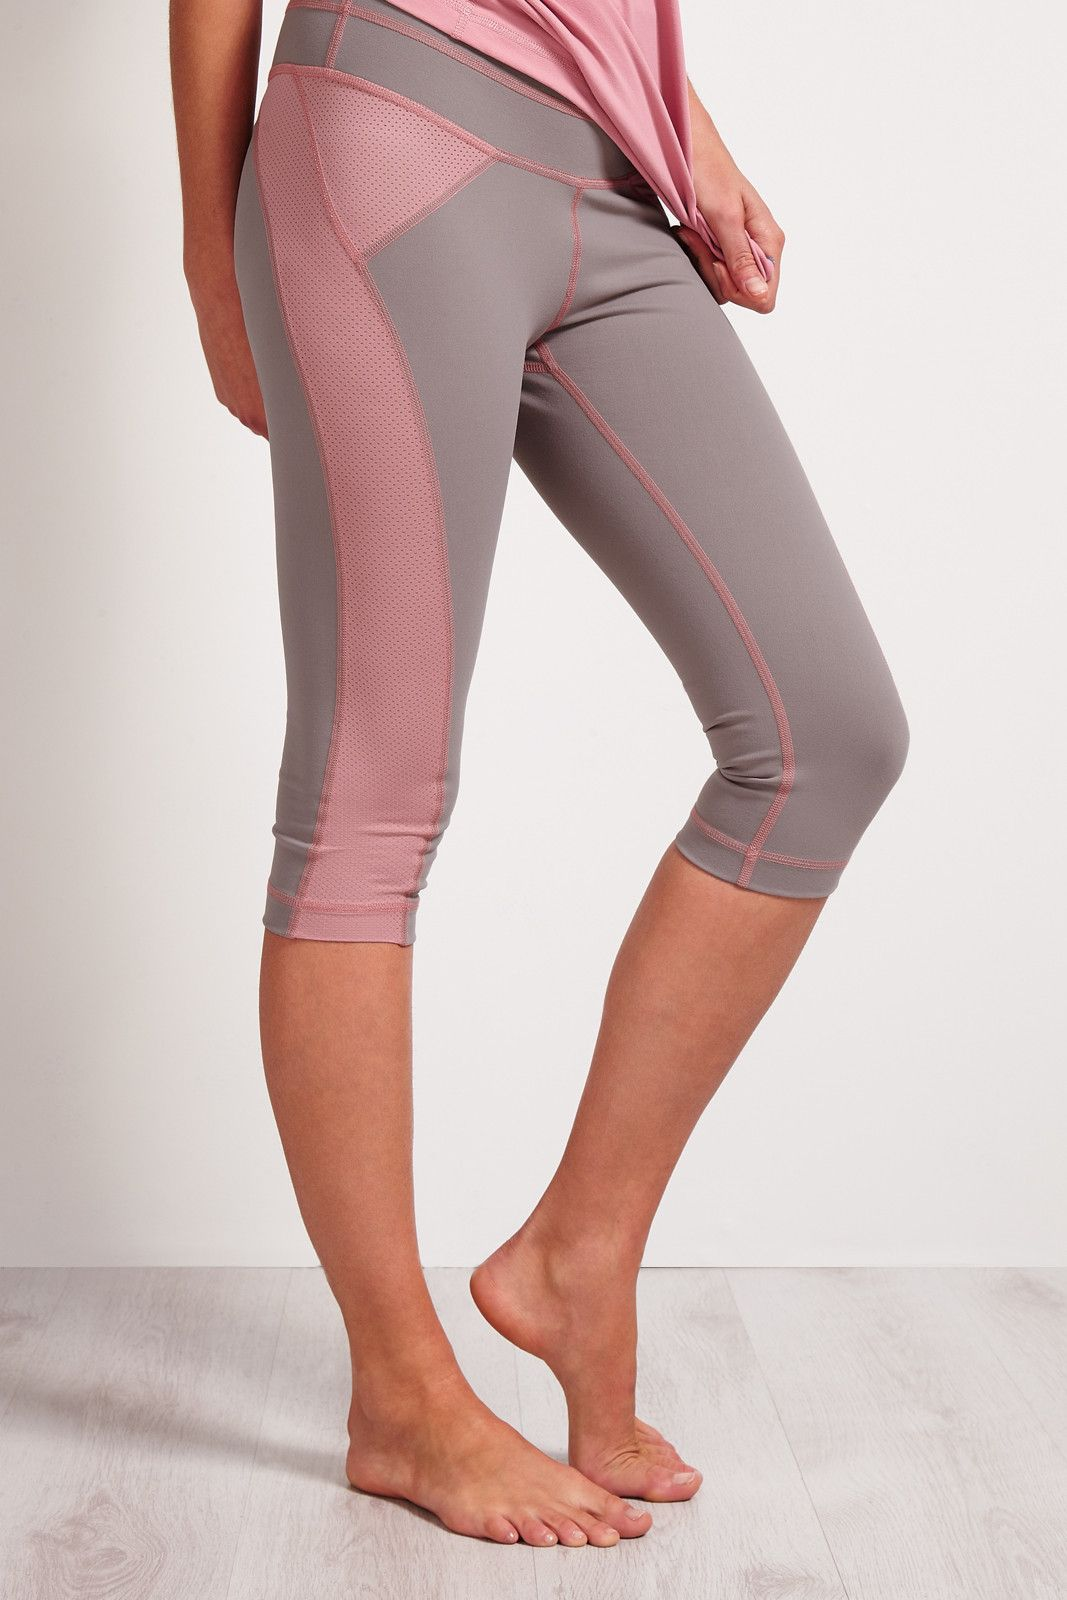 SALT Arc Yoga Capri Zinc image 1 - The Sports Edit